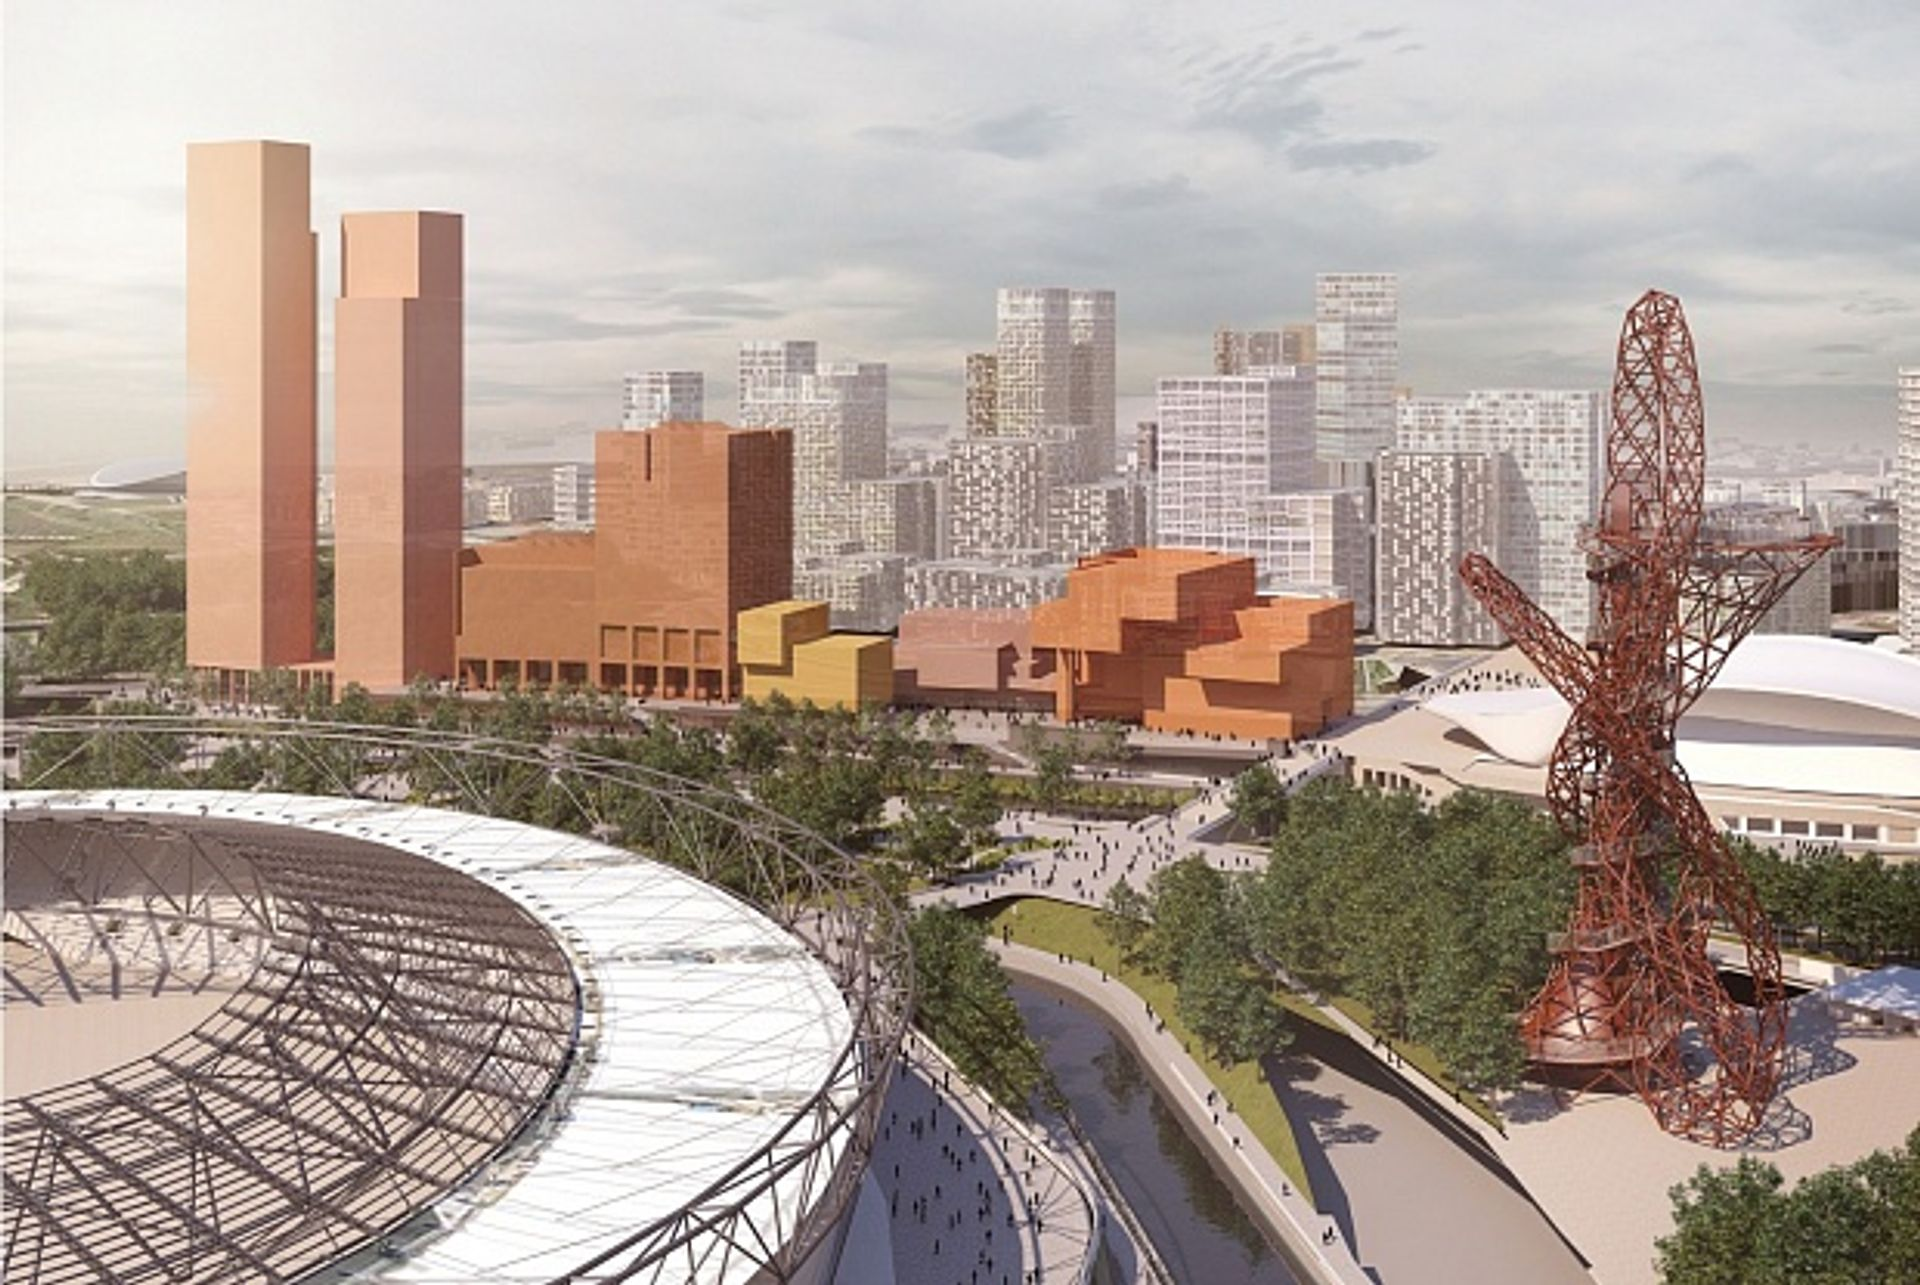 V&A East will be on London's Stratford Waterfront (2016 scheme) courtesy of Allies and Morrison Architects